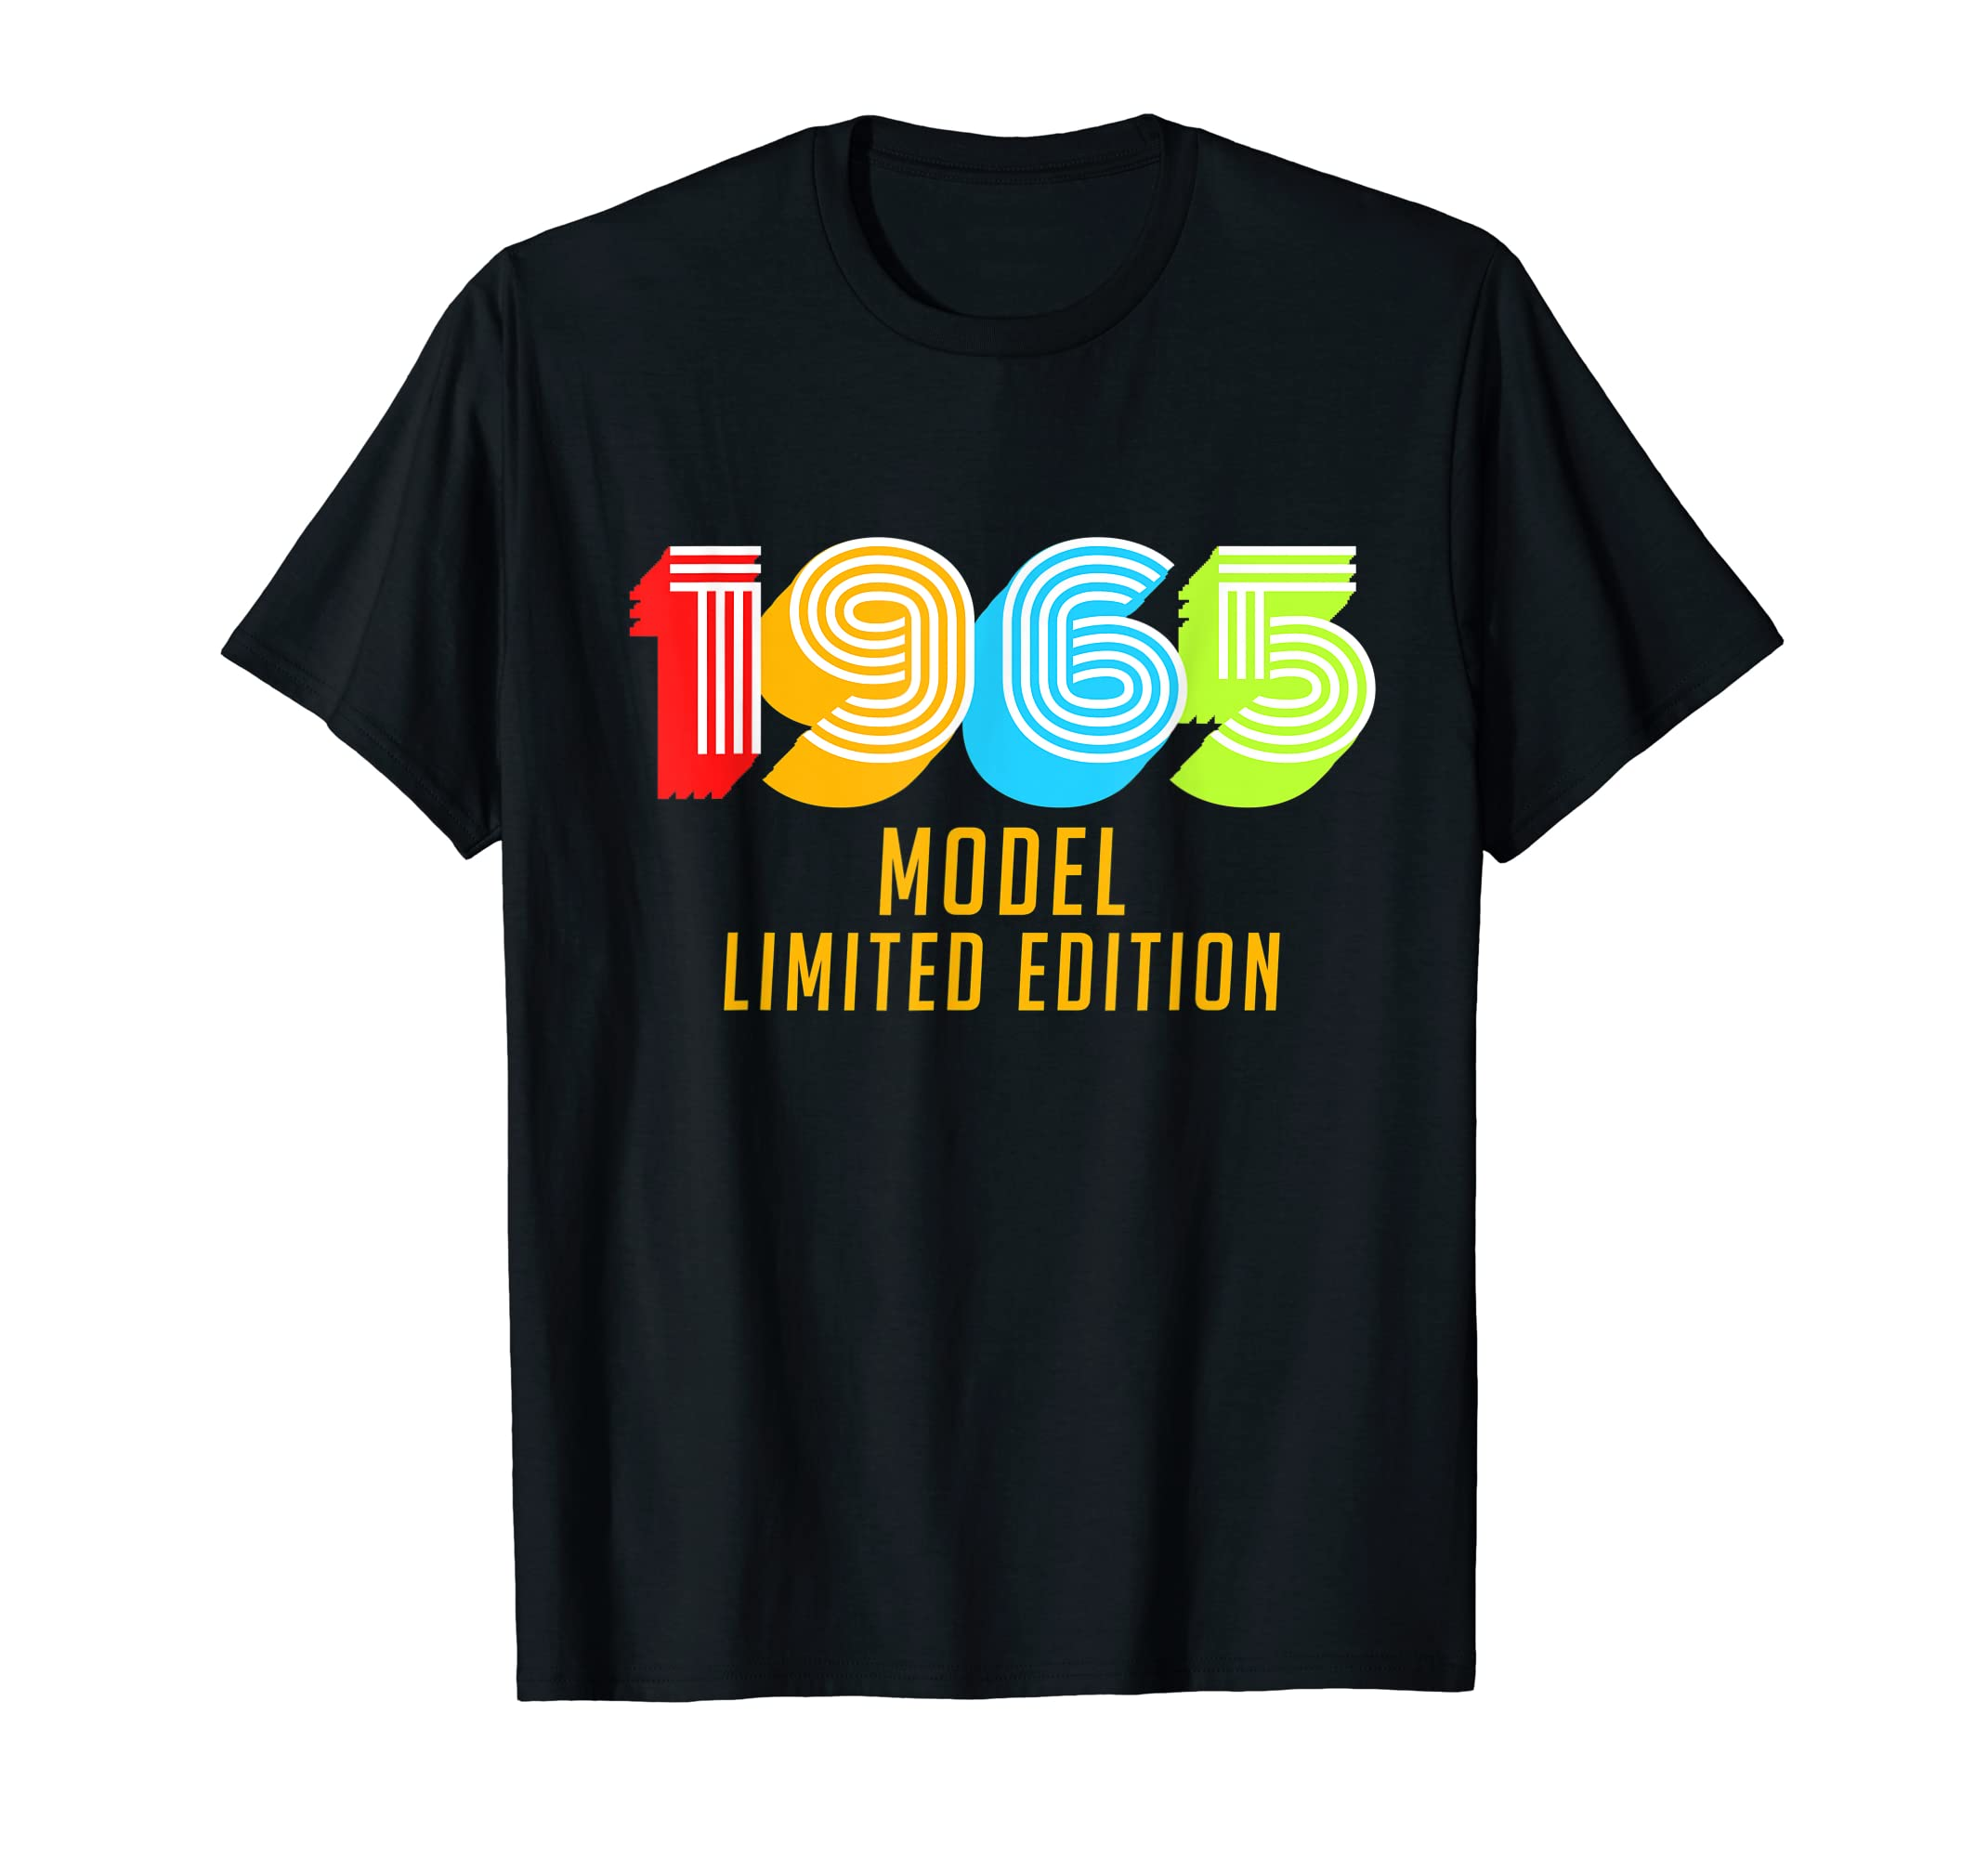 528b60190 Amazon.com: 1965 Model Funny 54th Birthday Retro Vintage T-Shirt Gifts:  Clothing